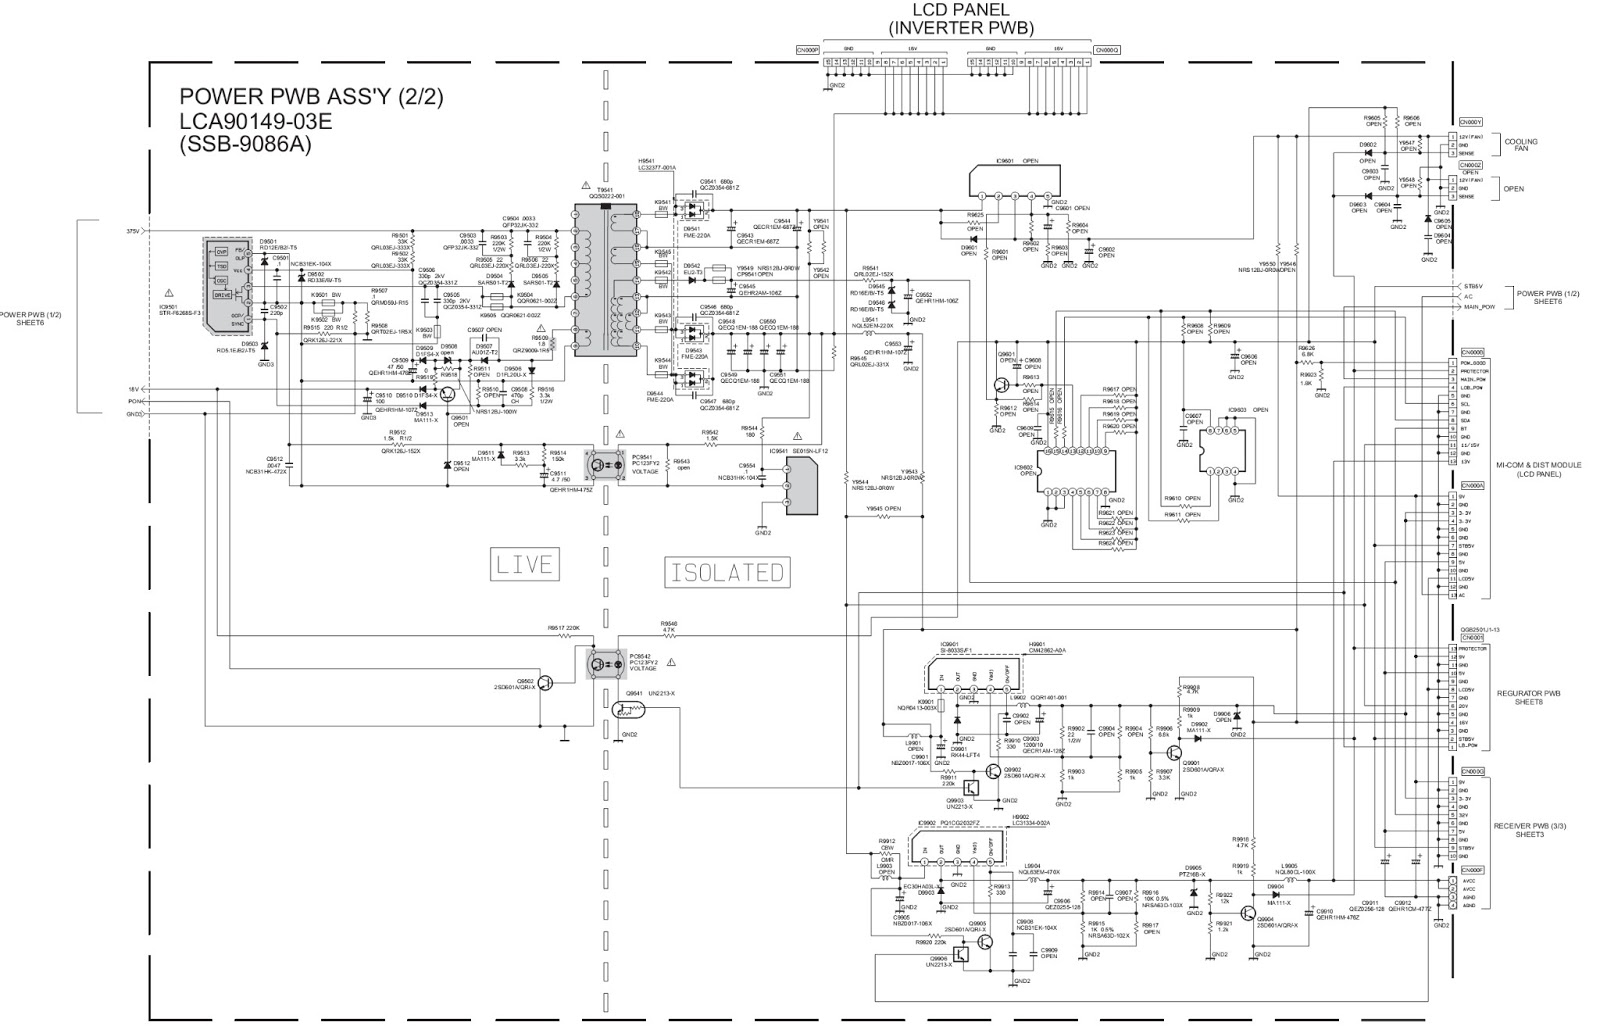 jvc lt 26wx84 lcd tv main power supply schematic. Black Bedroom Furniture Sets. Home Design Ideas